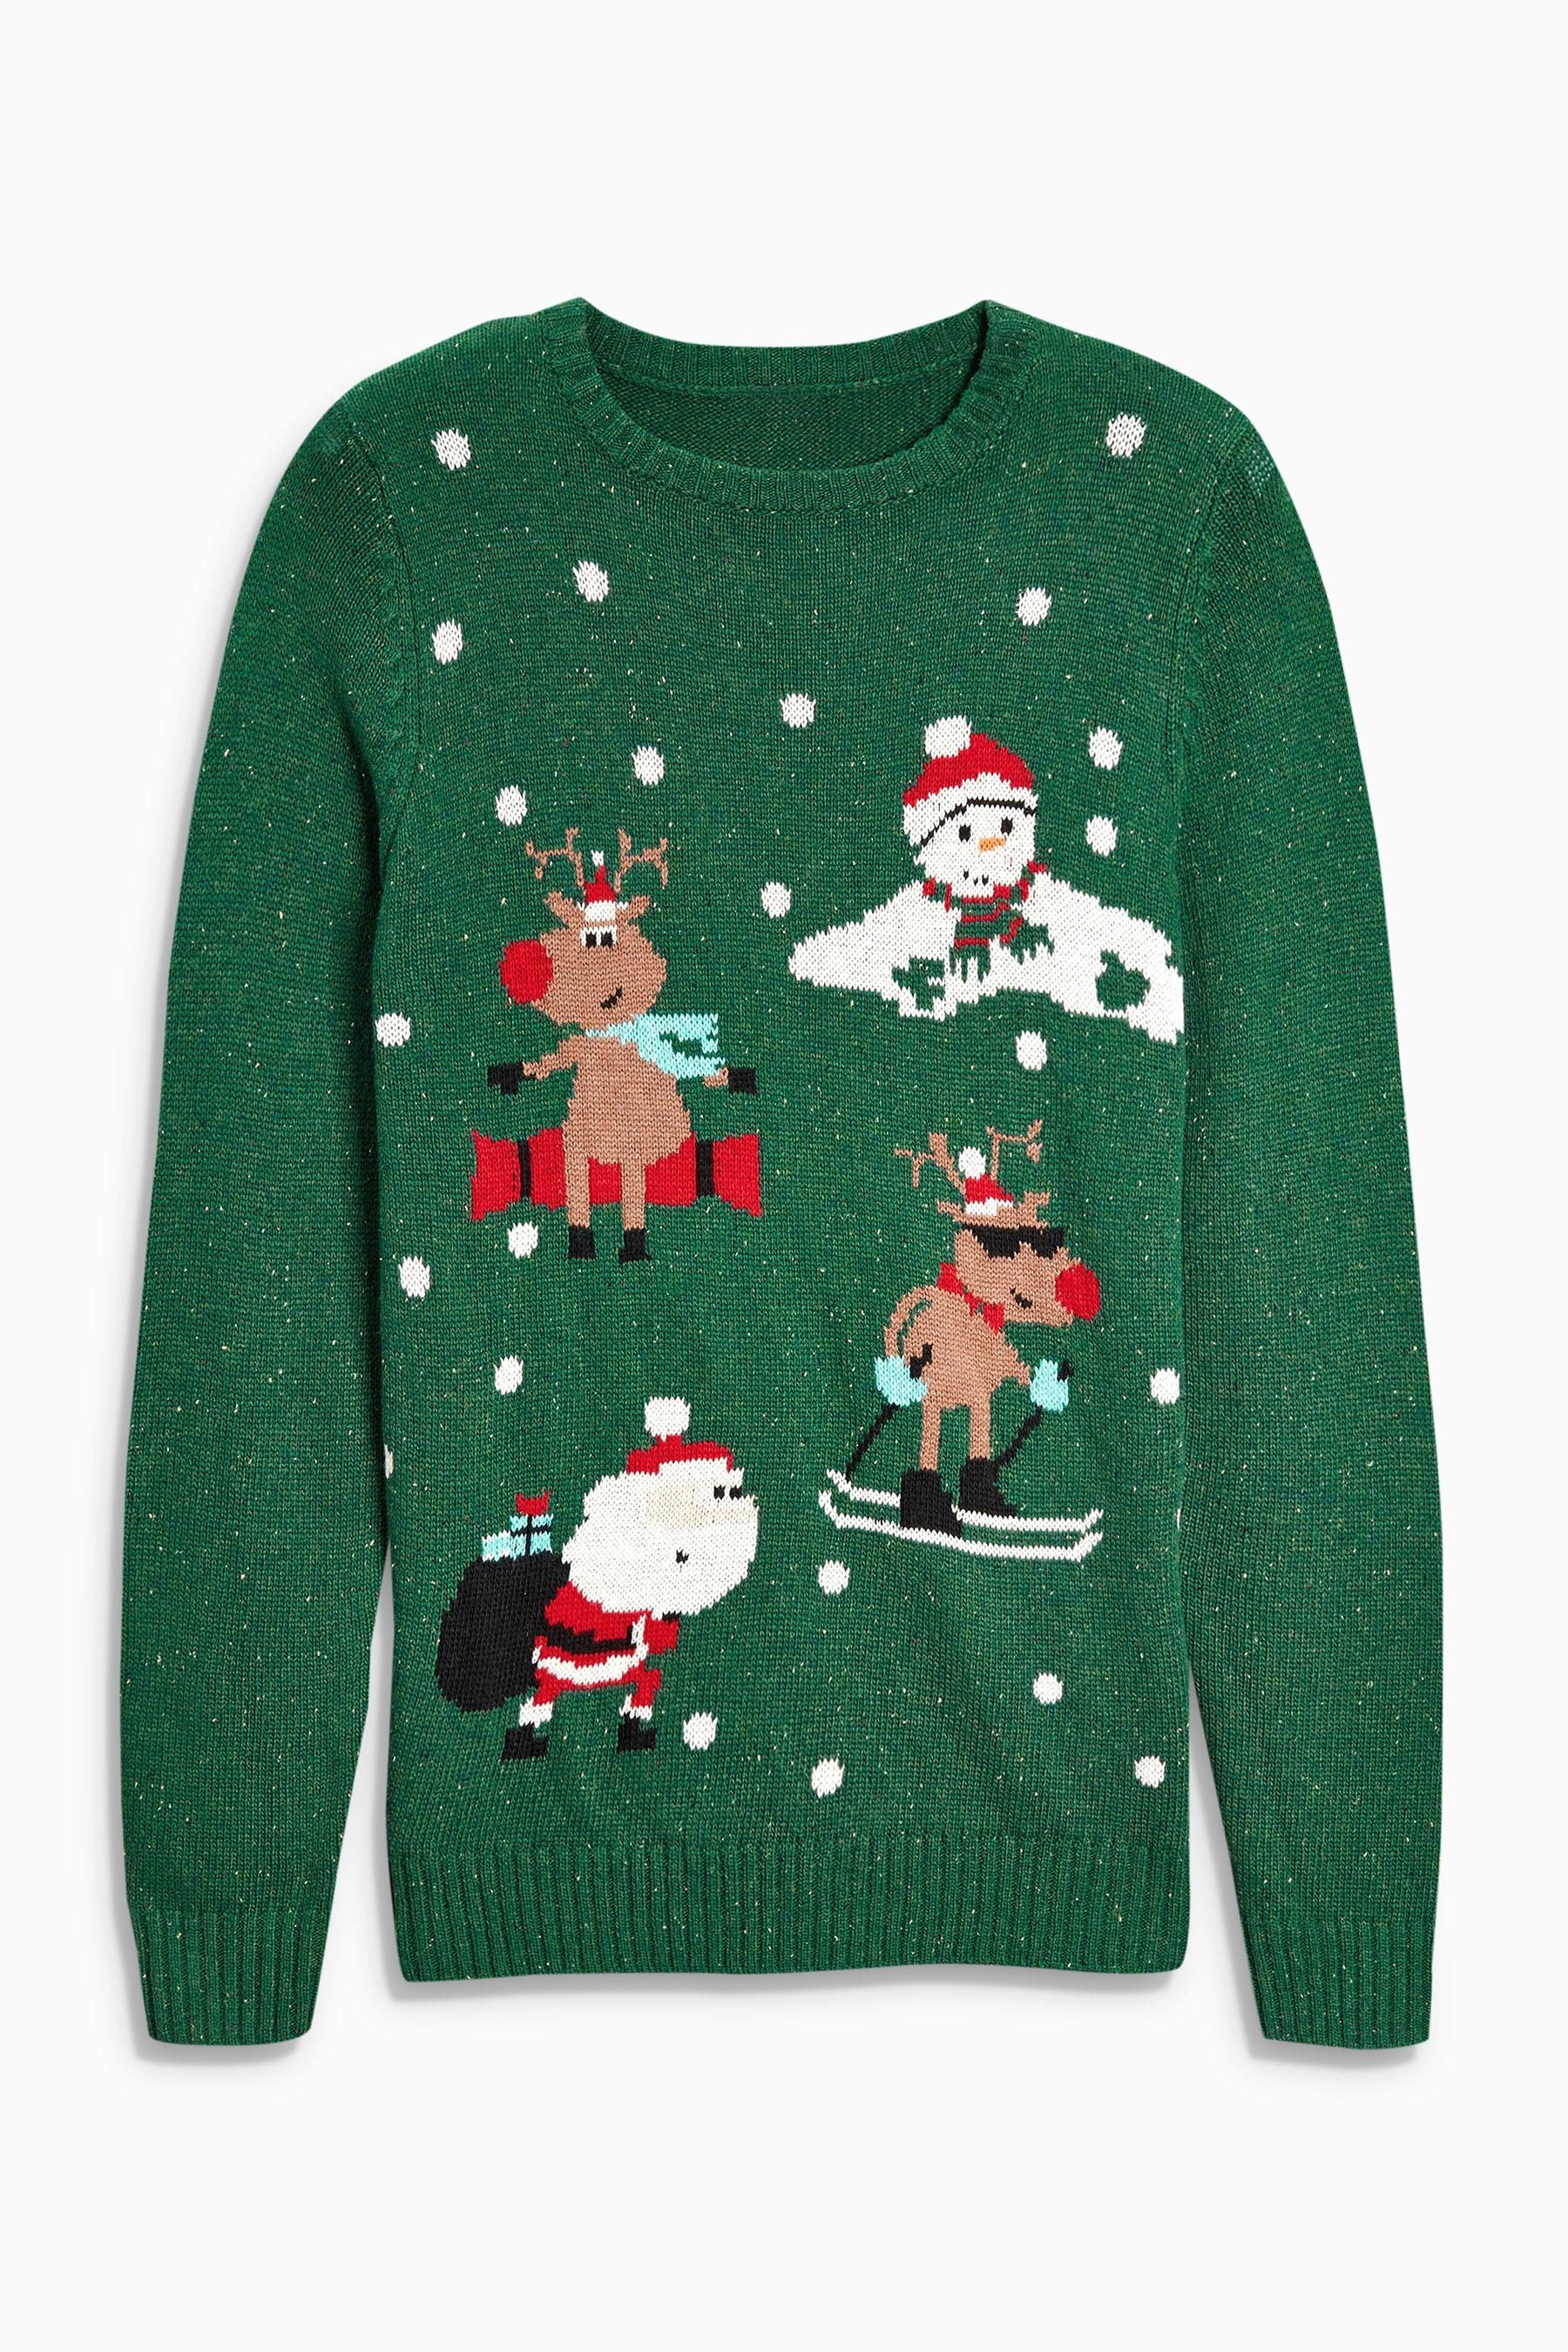 Buy Green Christmas Characters Jumper (3-16yrs) from the Next UK online shop